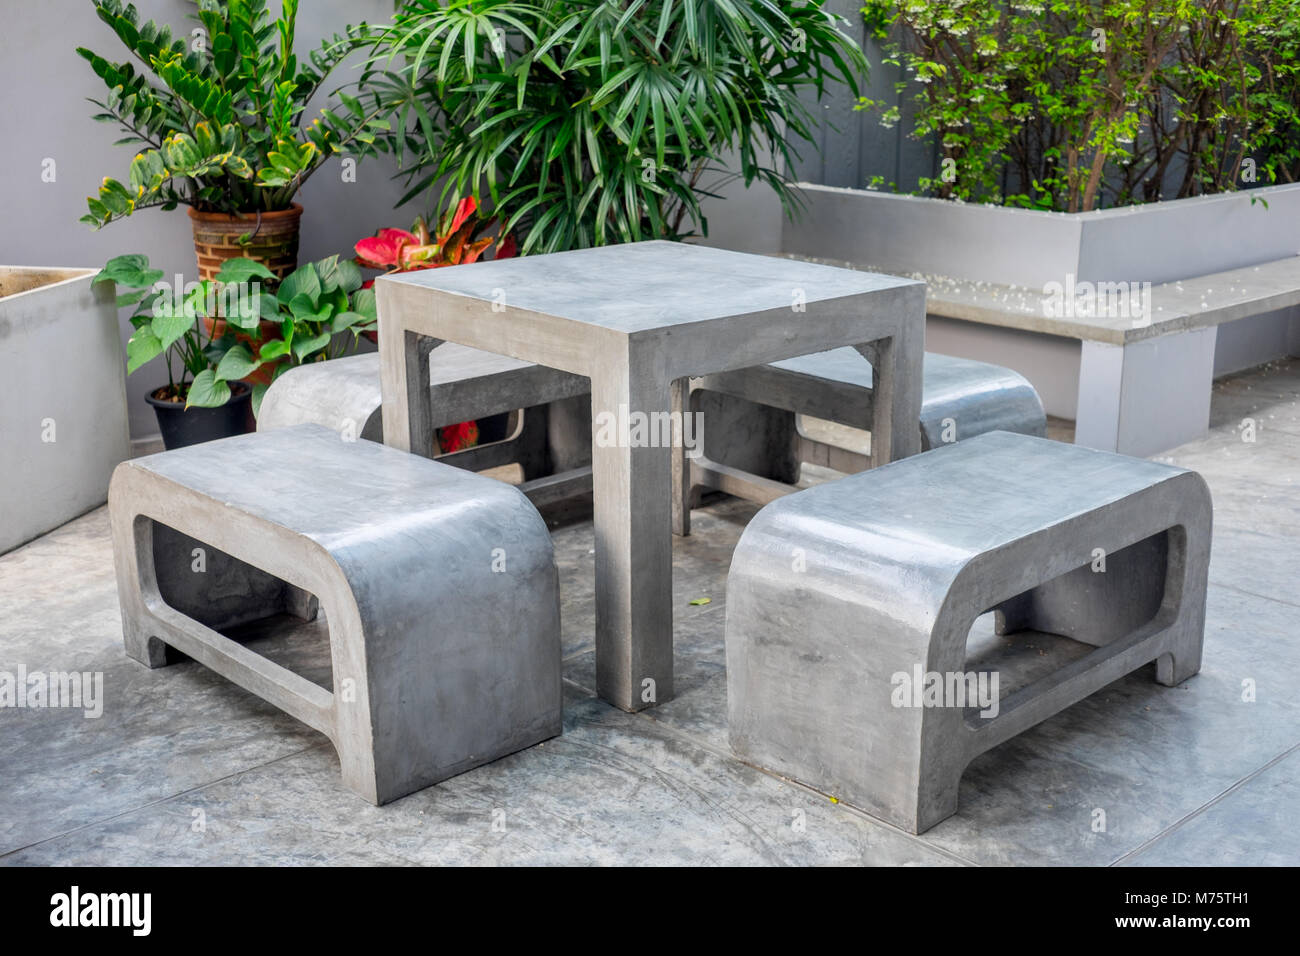 Concrete Outdoor Furniture Set In The Small Garden Including On Table And  Four Benches